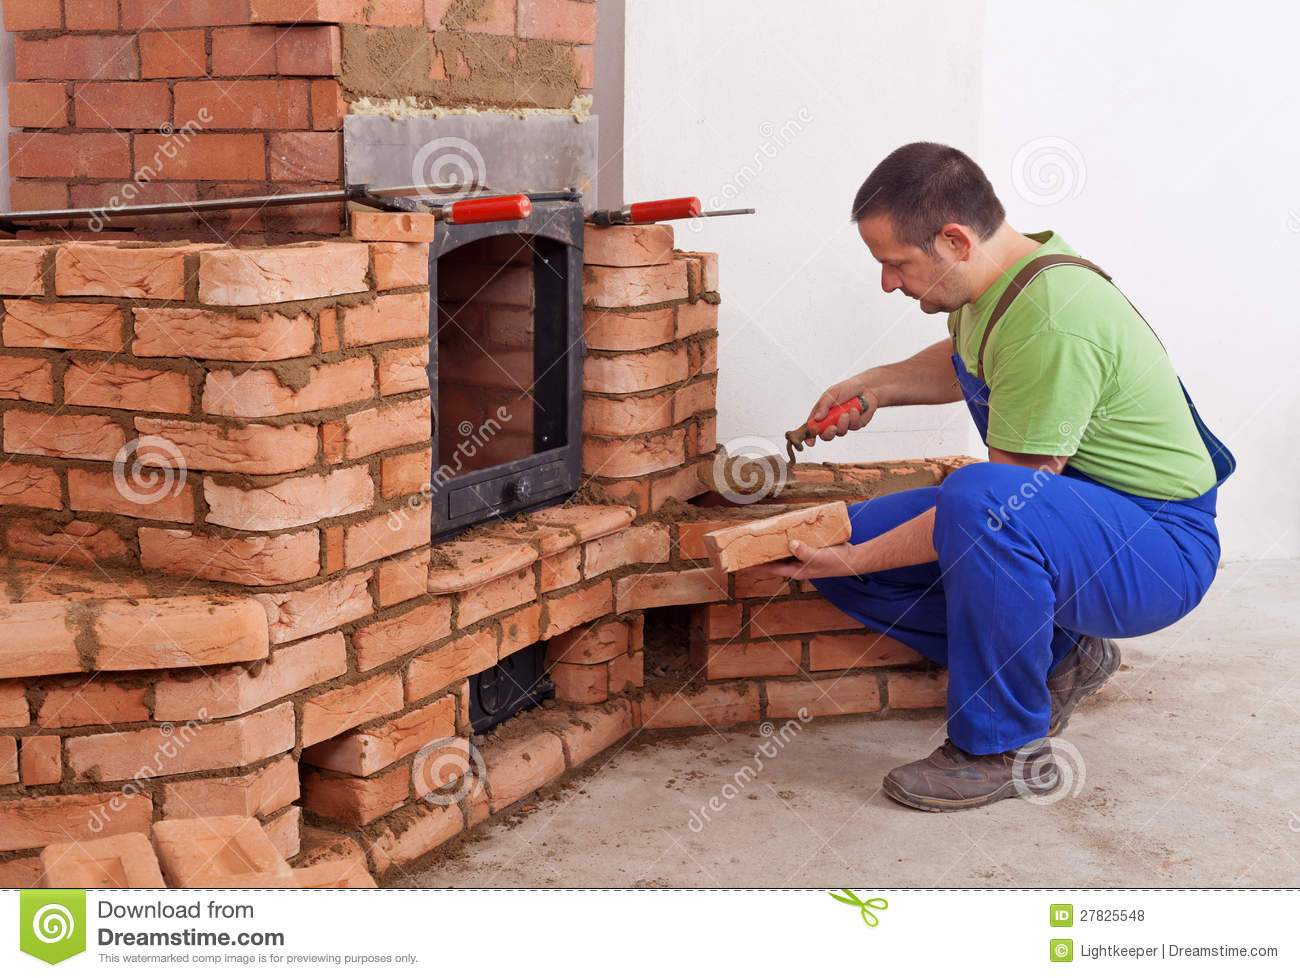 Kamin Einbauen Worker Building Masonry Heater Stock Photo - Image Of